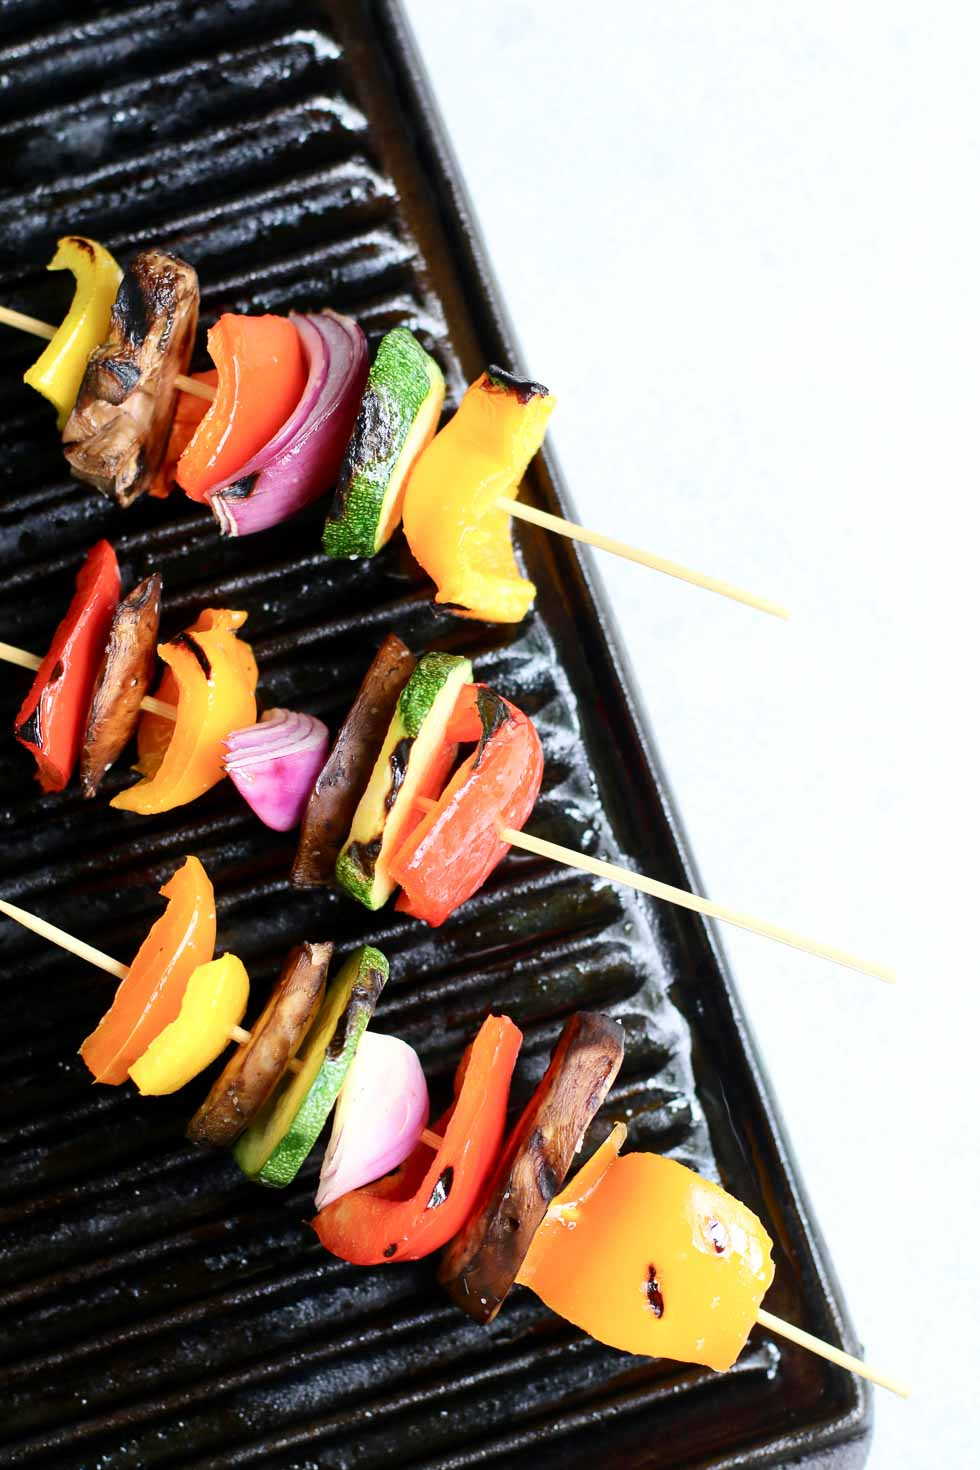 Summer Vegetables on a grill